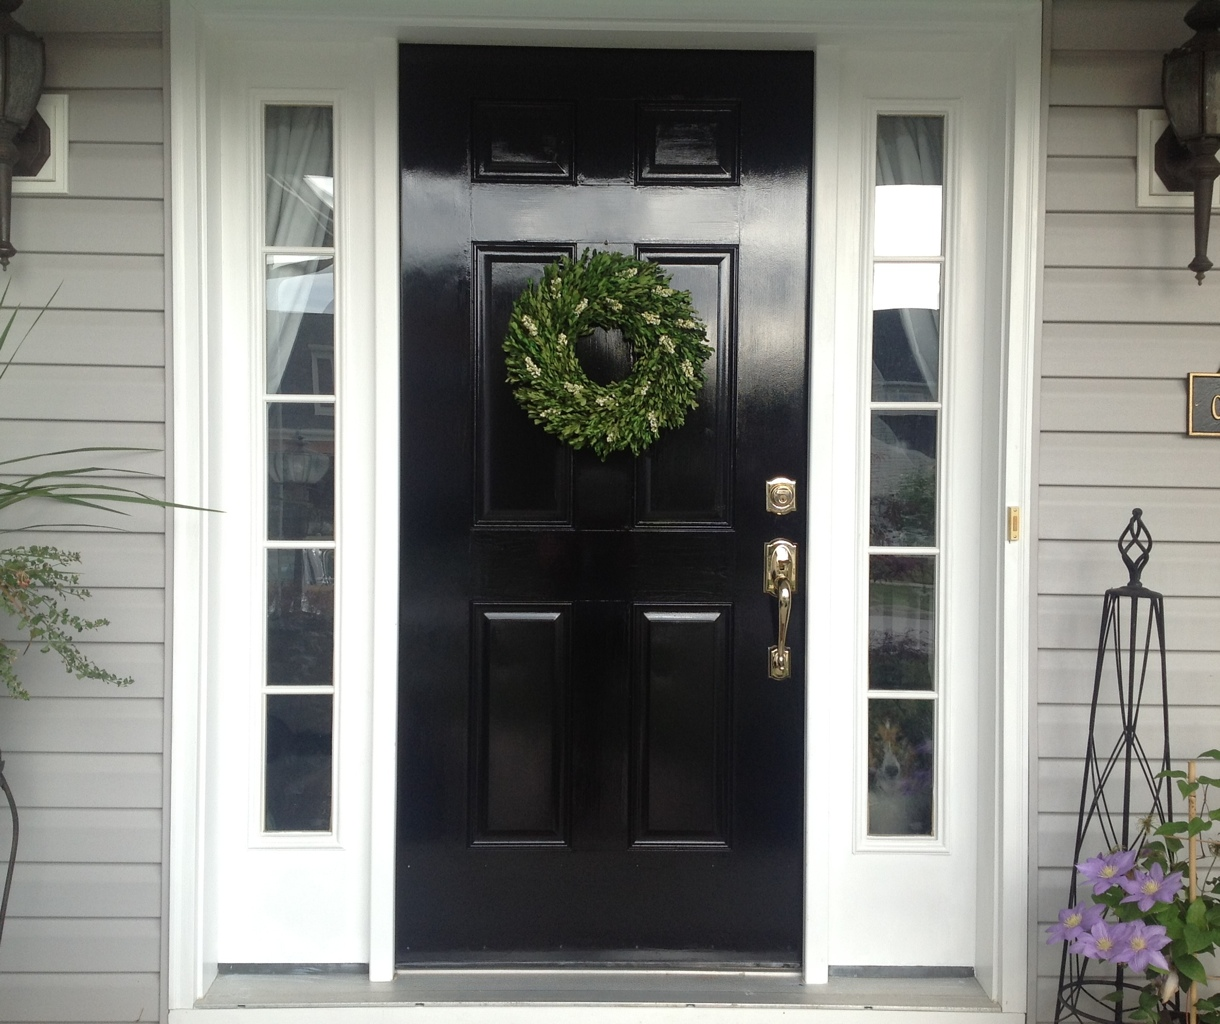 1024 #4B5A35 Glossy Black On The Inside Of The Front Door Is A Hot Trend I Just  wallpaper Black Front Doors With Glass 43451220